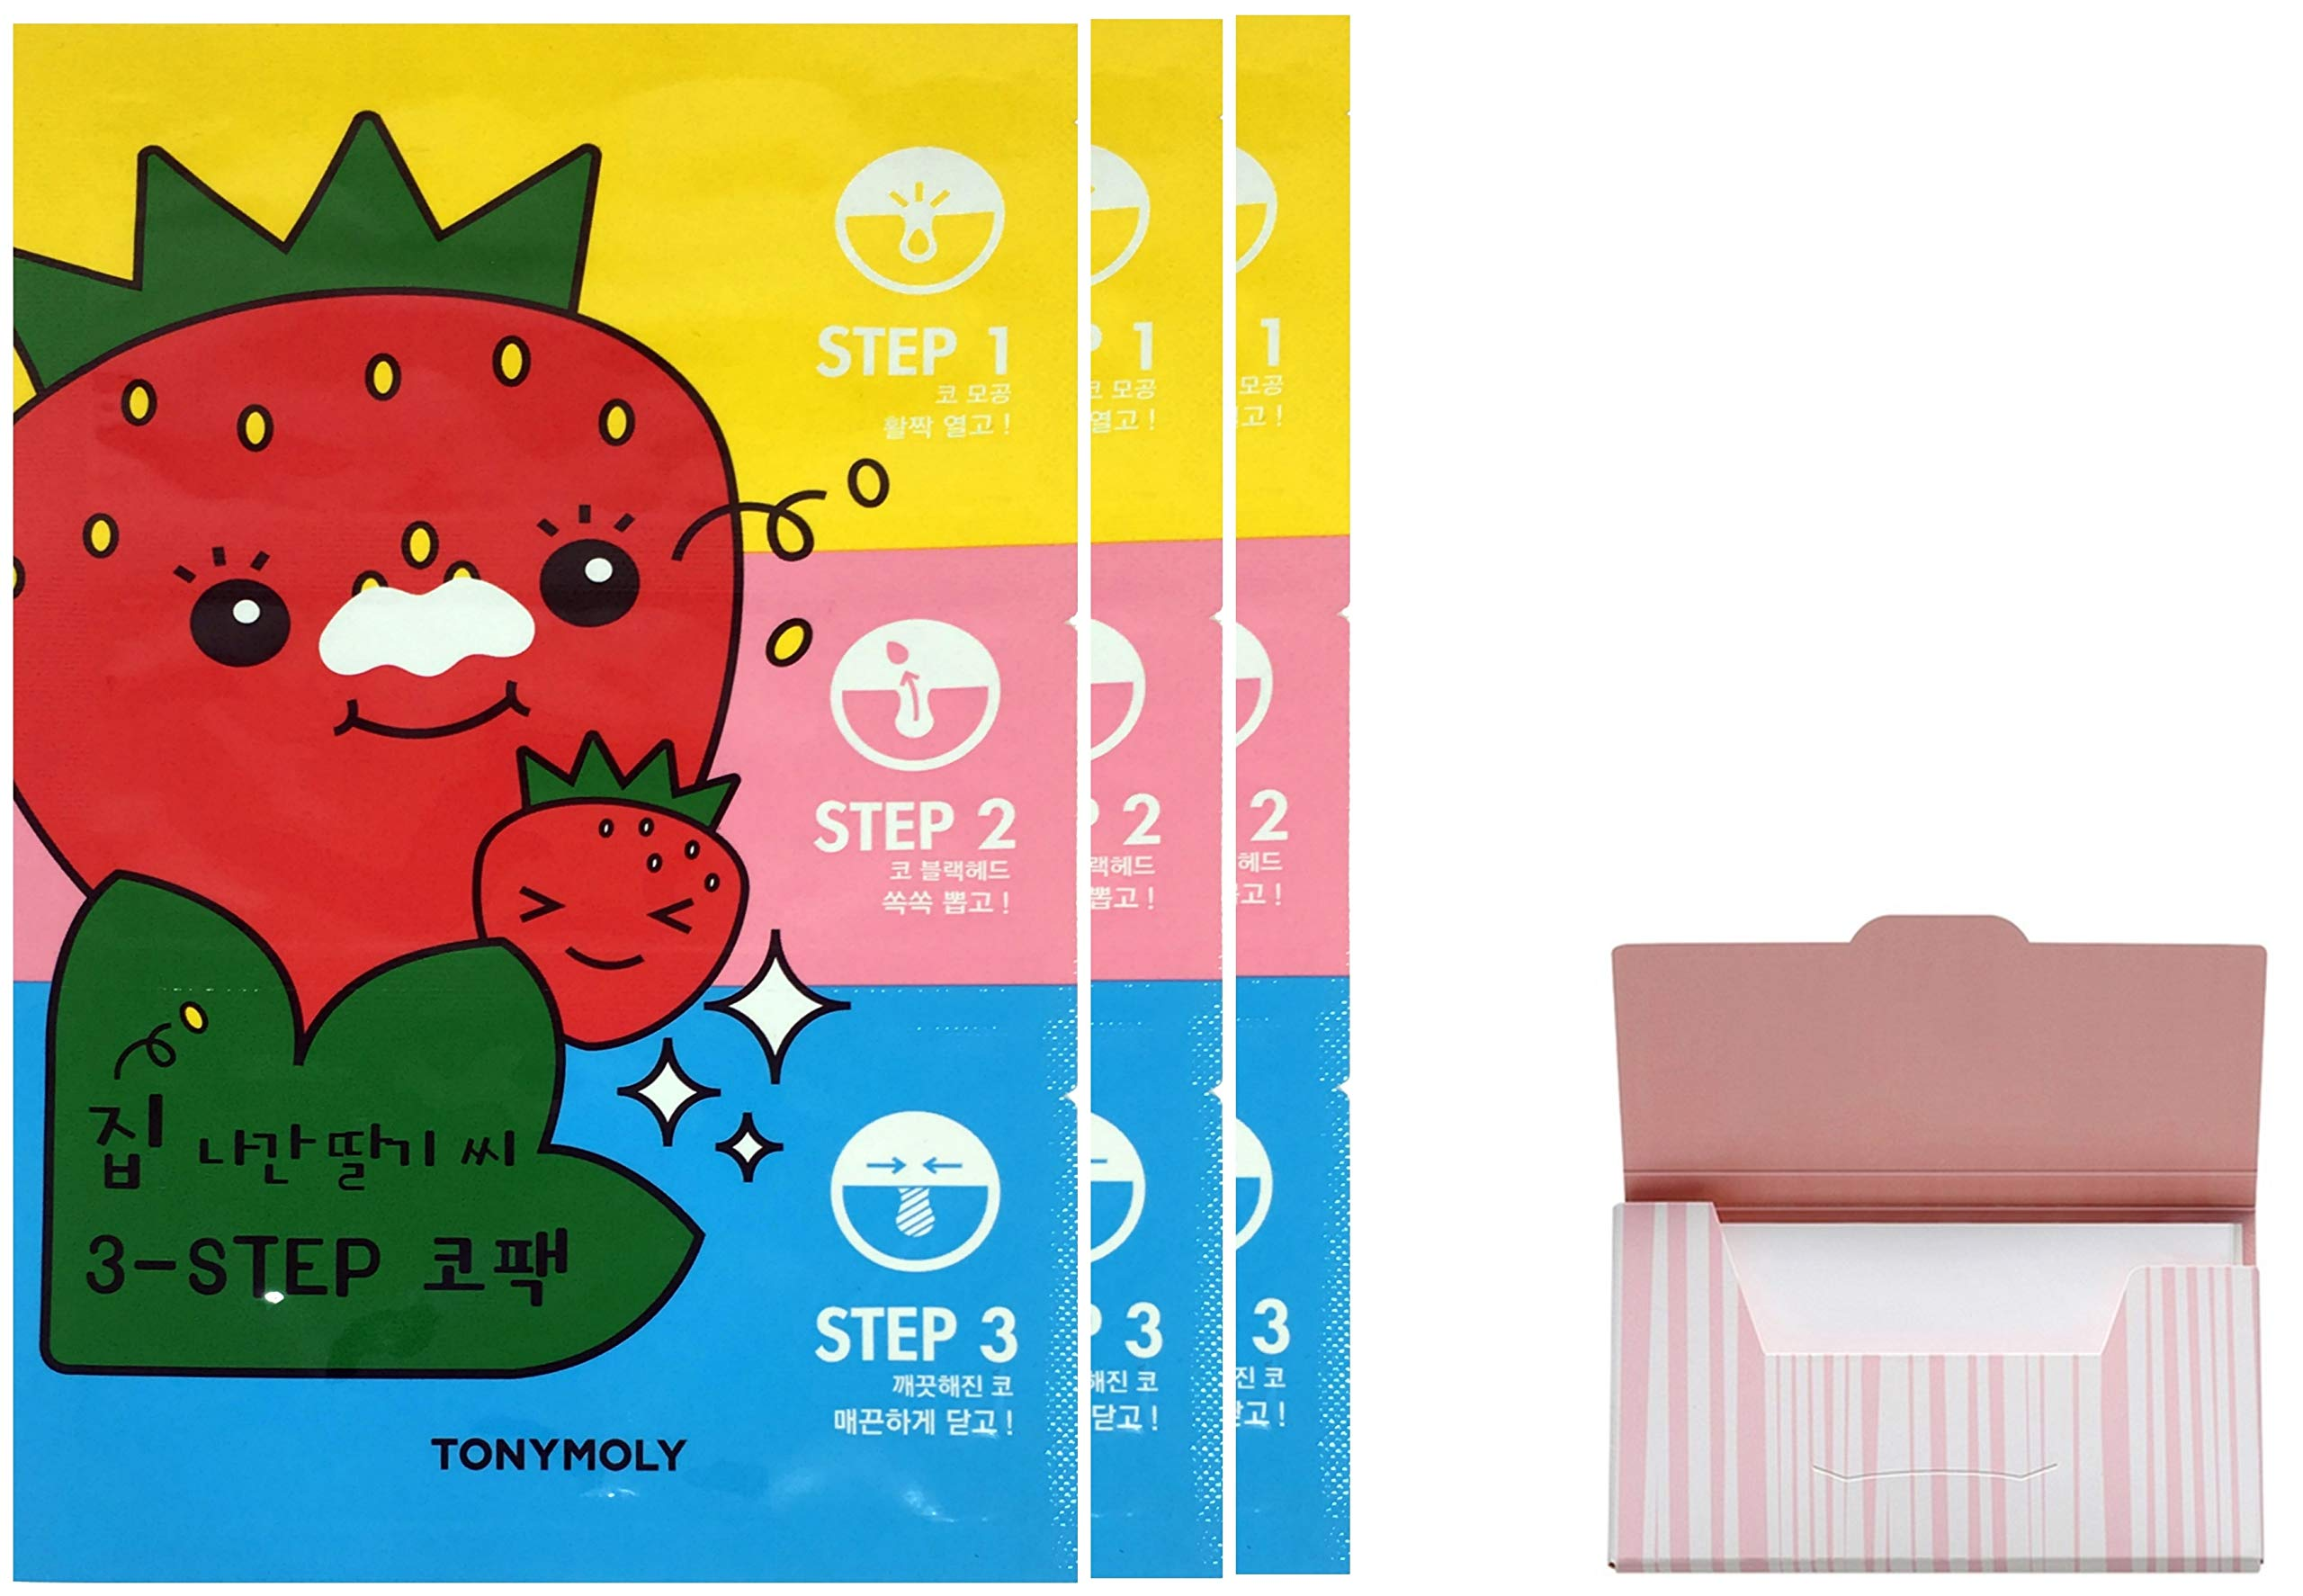 Seedless Strawberry Seeds 3-step Nose Pack 3 Set Bundle with Oil Blotting Paper by Koco4u